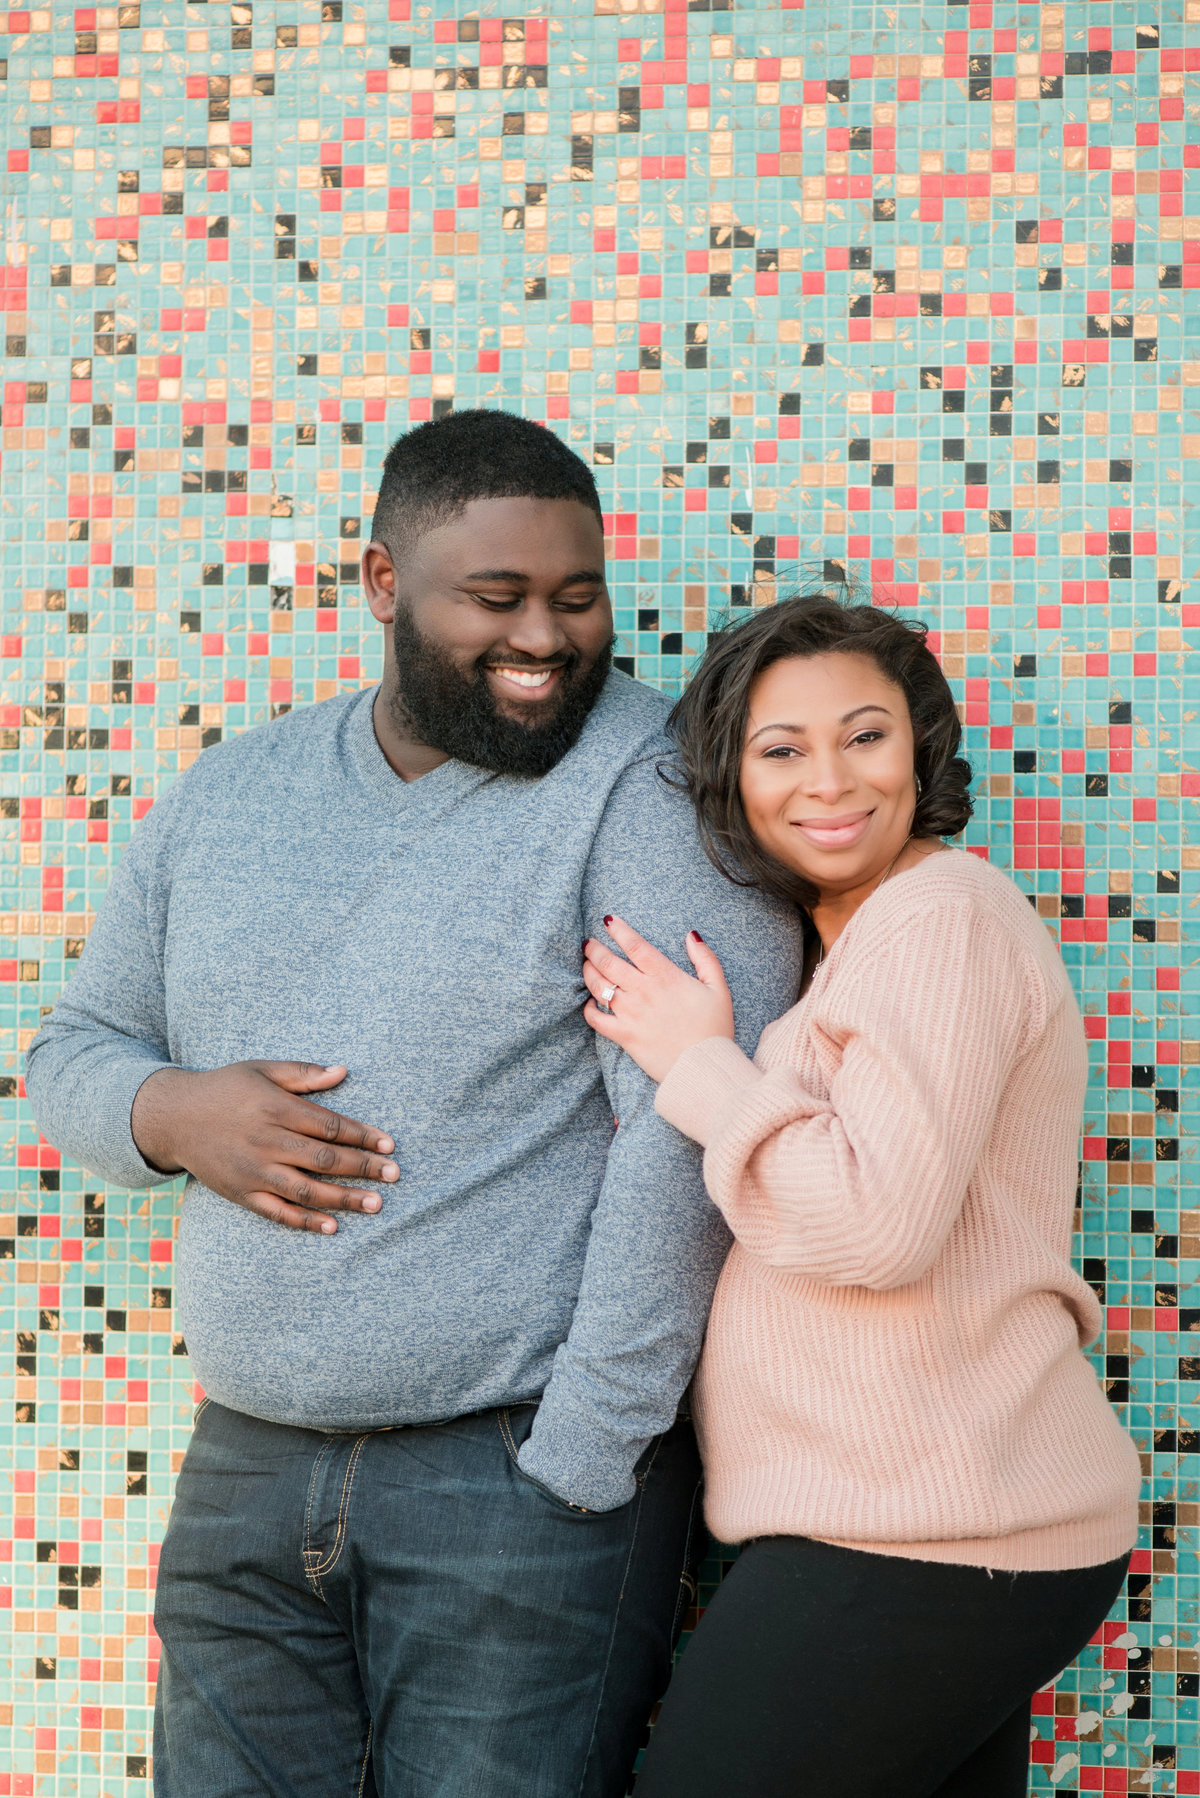 kiana-don-asbury-park-engagement-session-imagery-by-marianne-2017-52